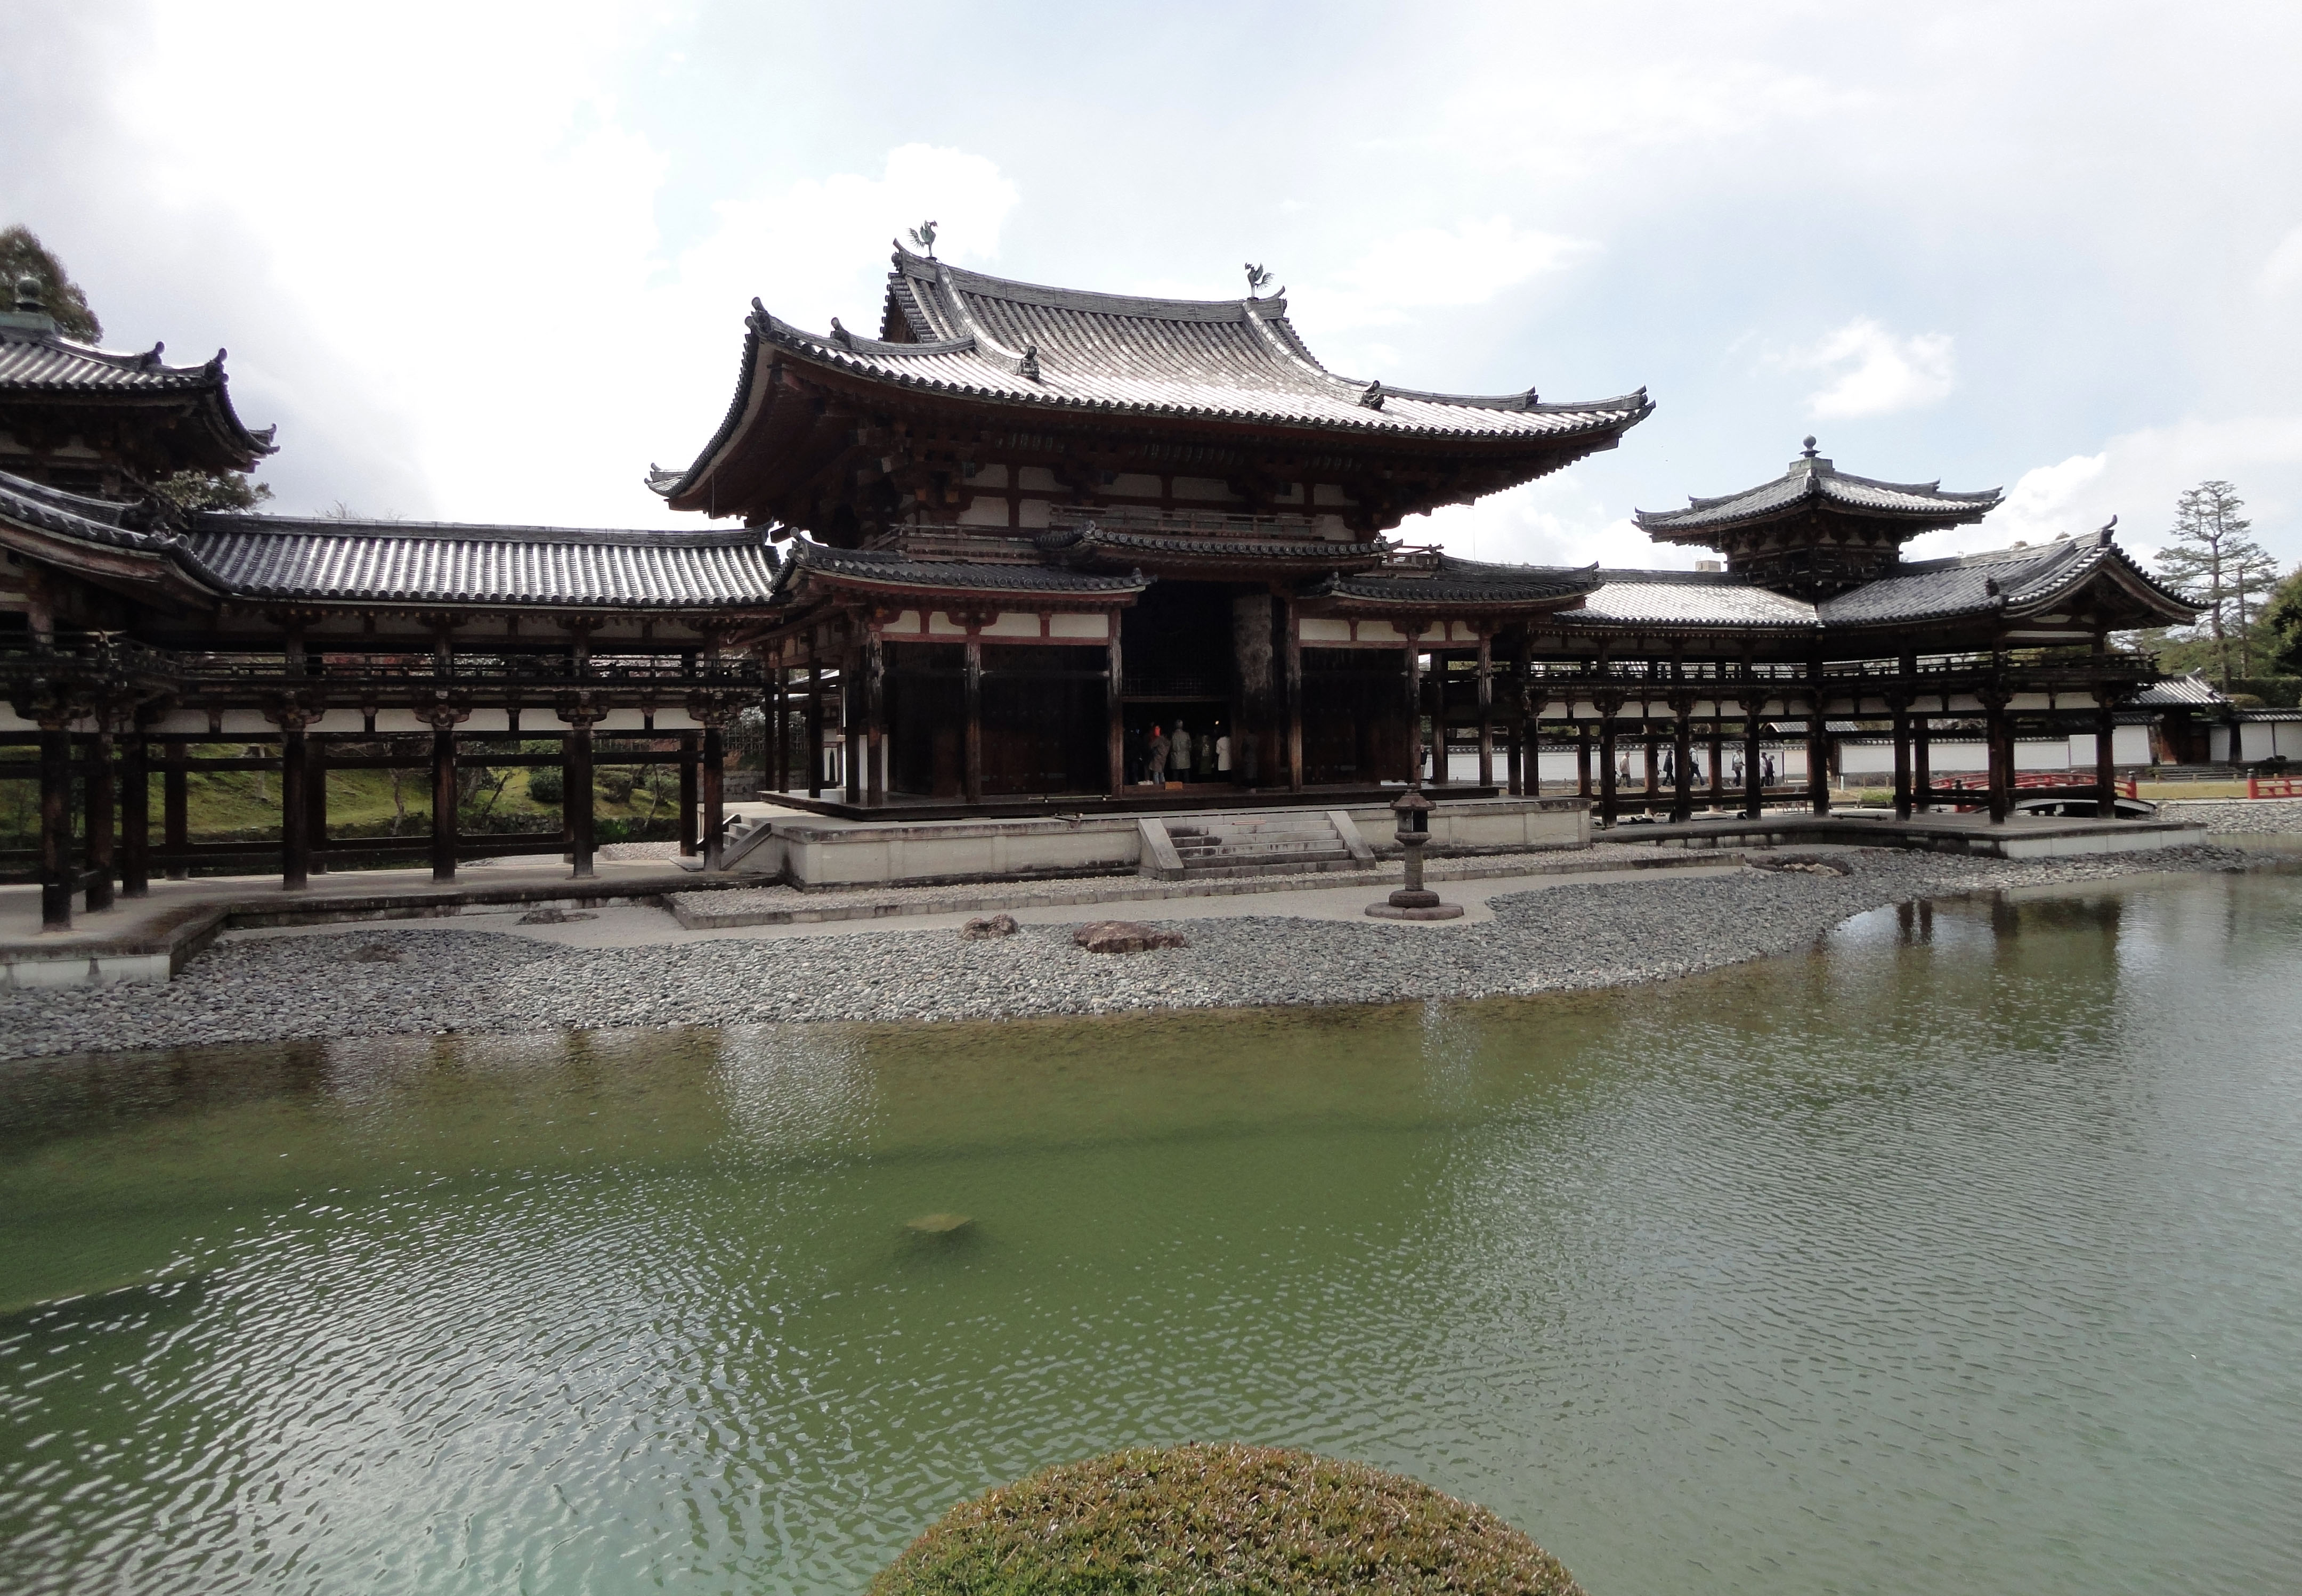 Byodo in temple Phoenix Hall Architecture Kyoto Japan 05